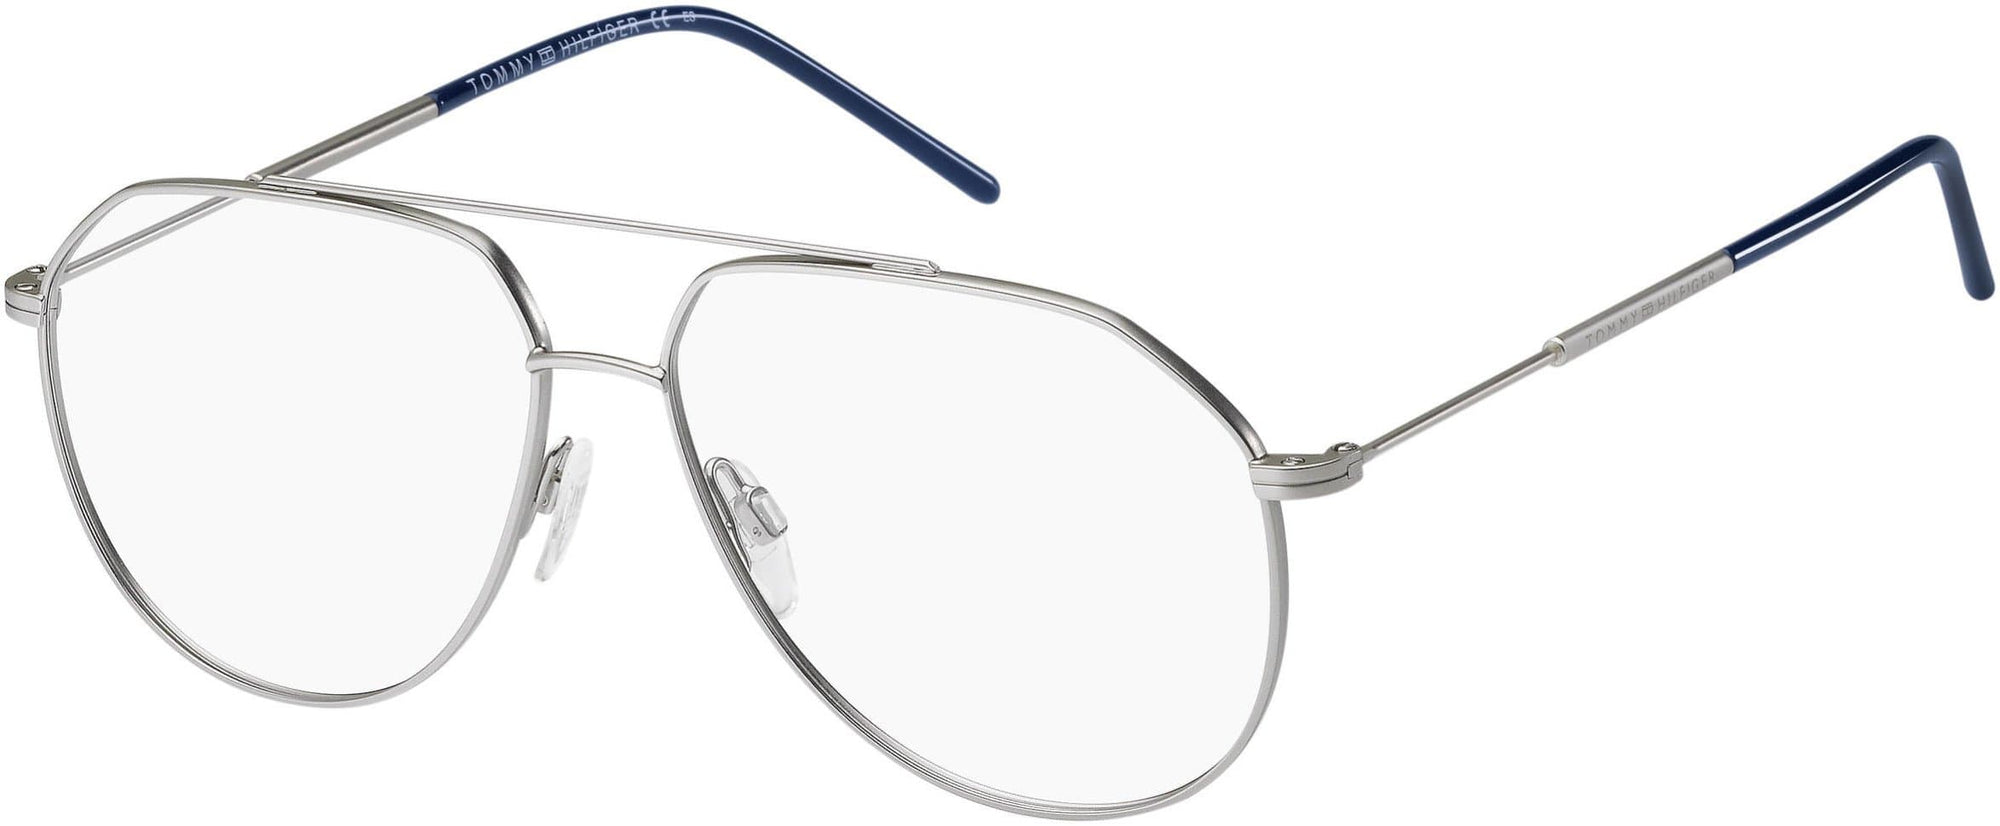 Tommy Hilfiger TH 1585 Aviator Eyeglasses 0CTL-0CTL  Matte Palladium (00 Demo Lens)